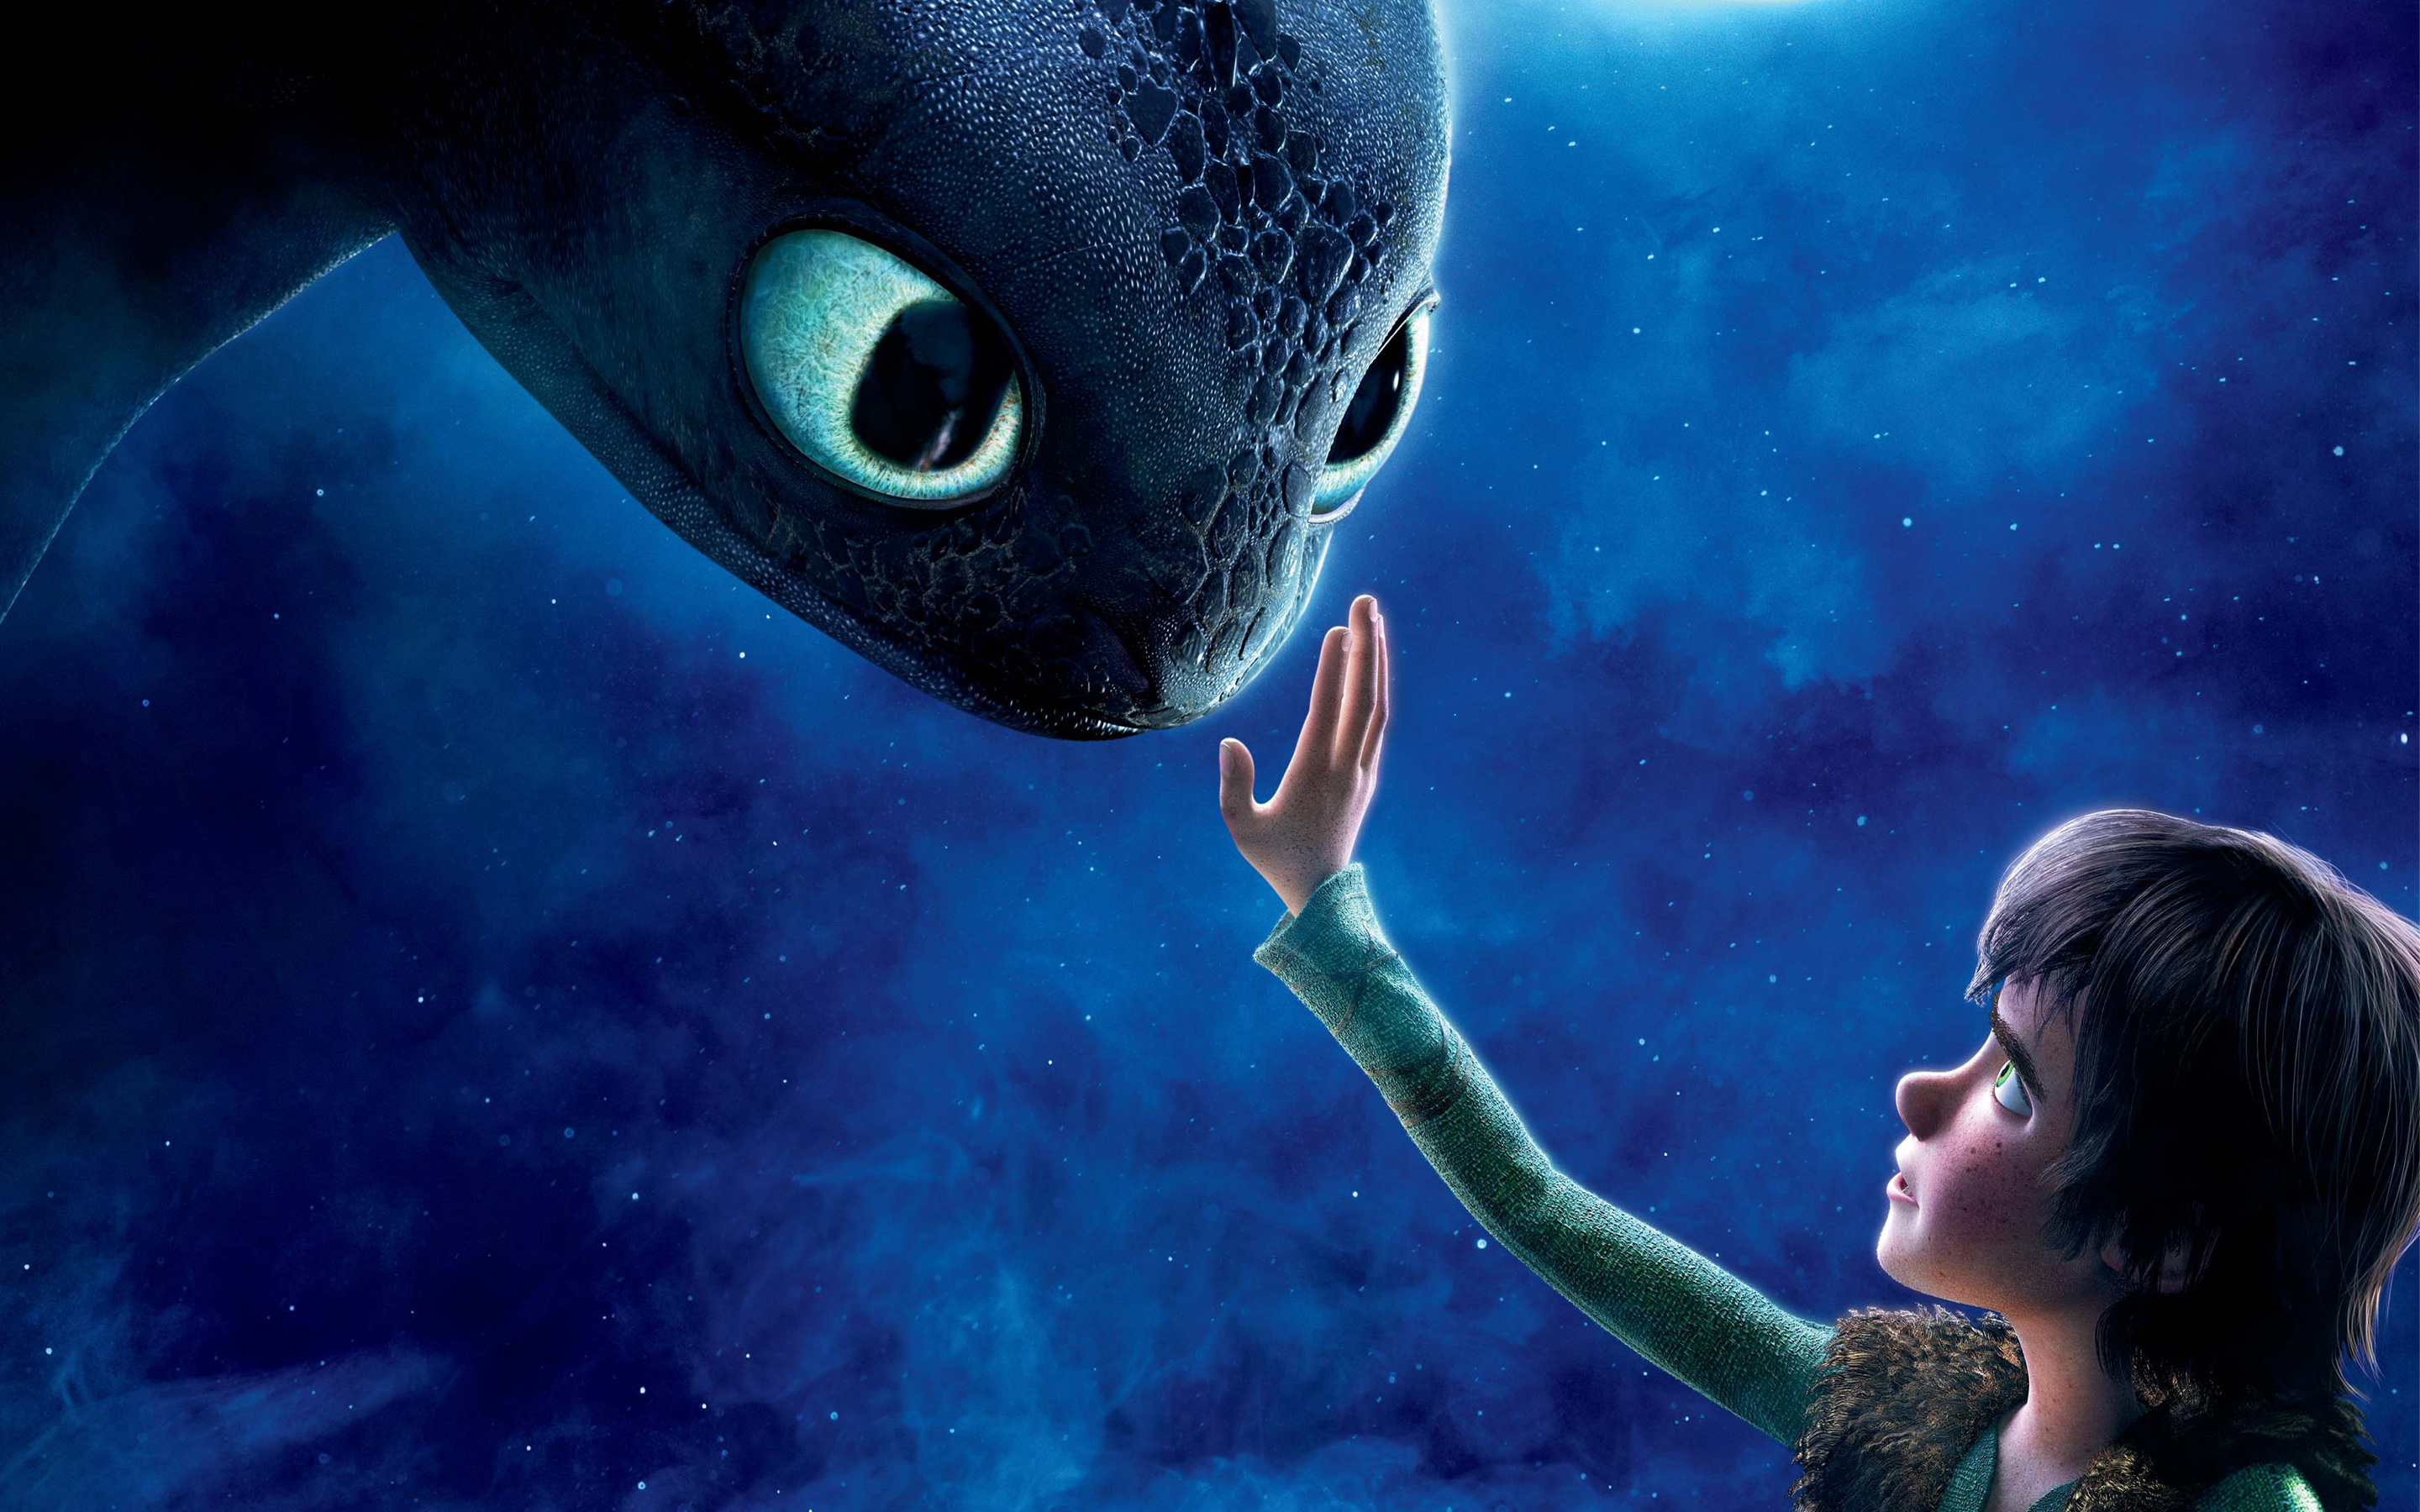 How to Train Your Dragon (2010) Movie 225.27 Kb